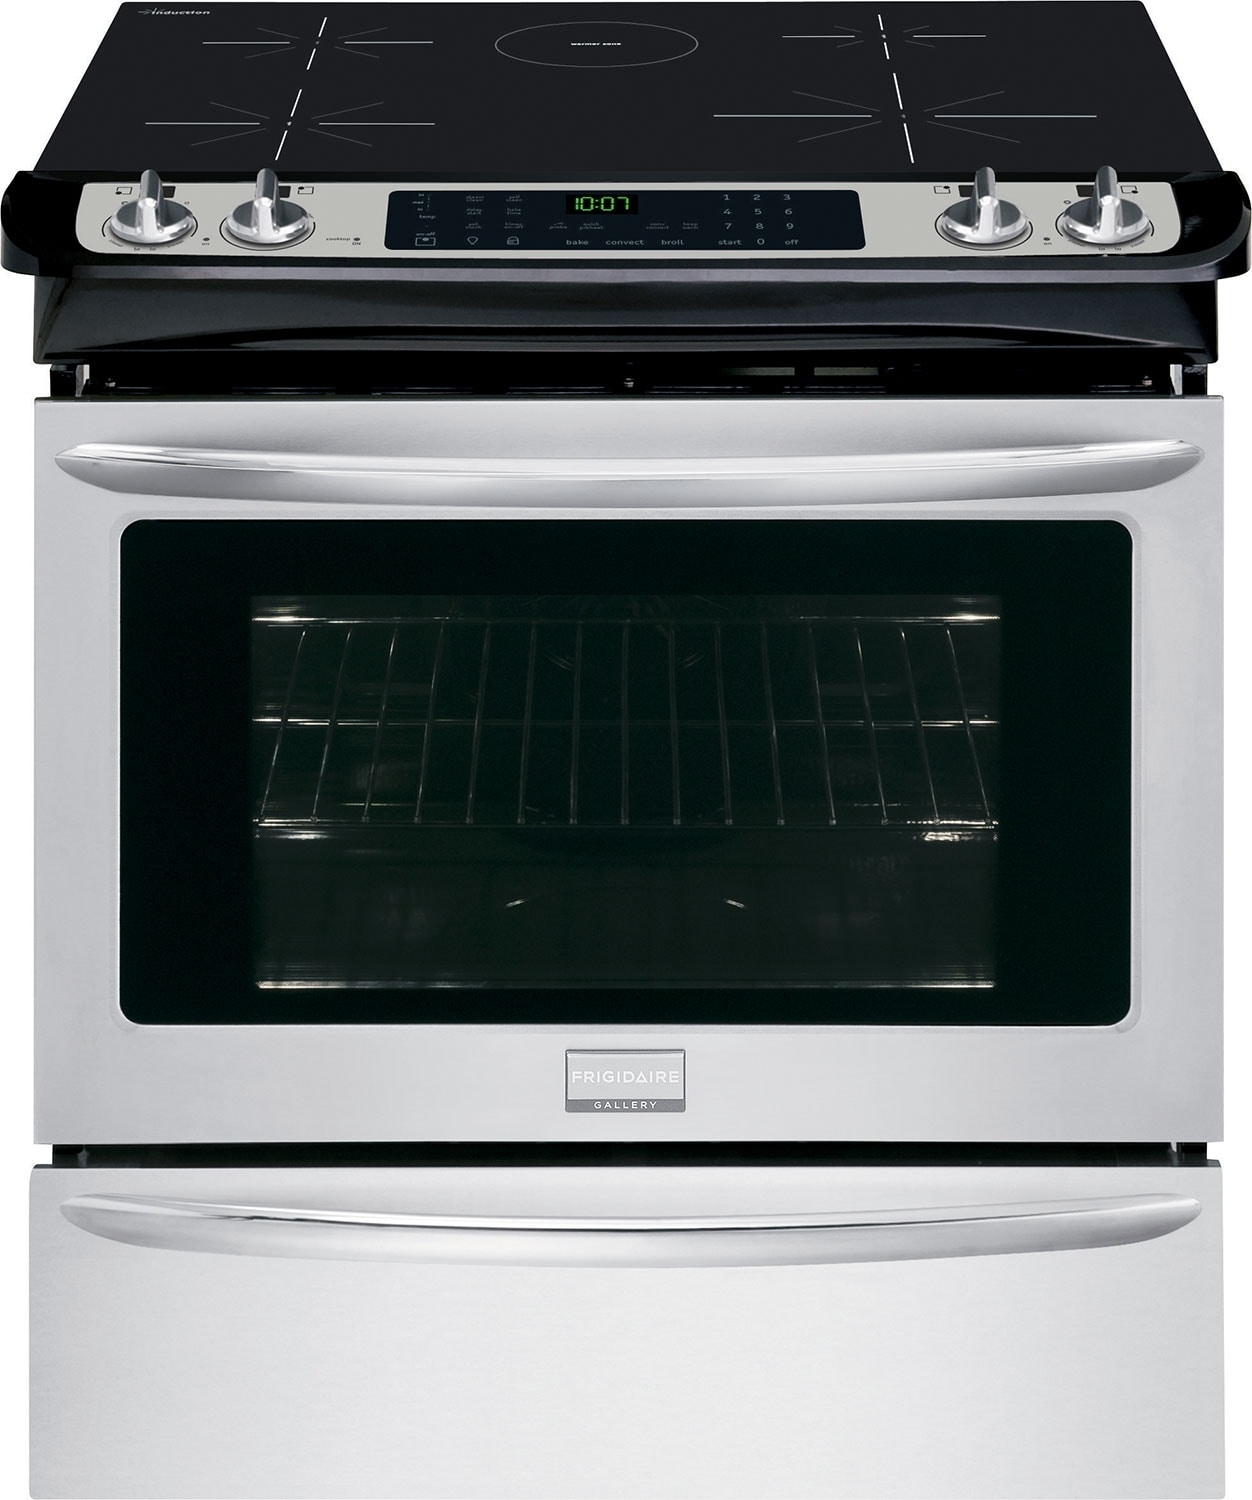 "Cooking Products - Frigidaire Gallery 30"" 4.6 Cu. Ft. Slide-In Induction Range - Stainless Steel"